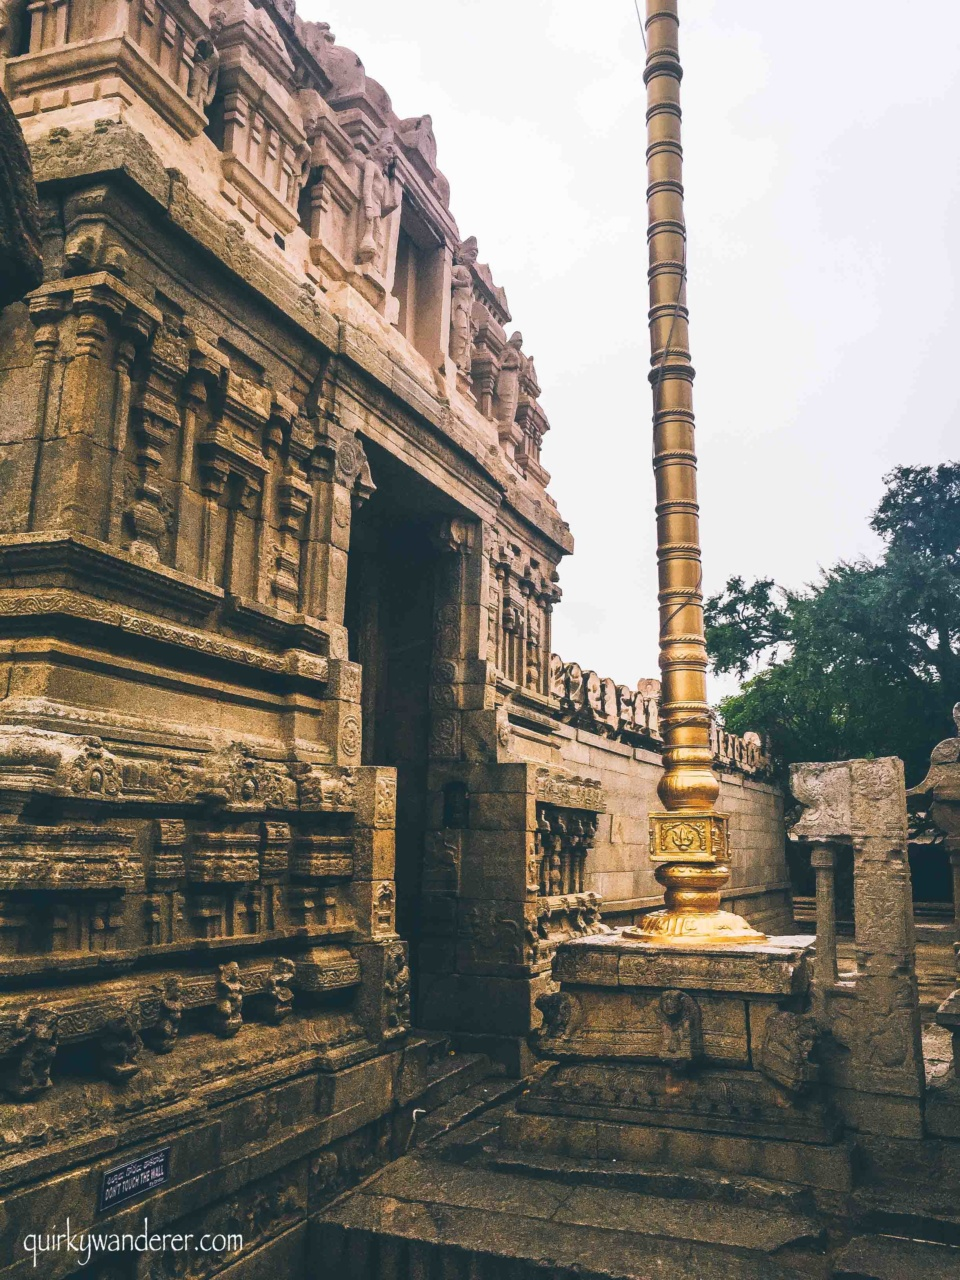 Lepakshi is a small town in Andhra Pradesh and makes for an ideal getaway from Bangalore. It is known for the famous Veerbhadra temple whose 16th century stone architecture is worth a mention.